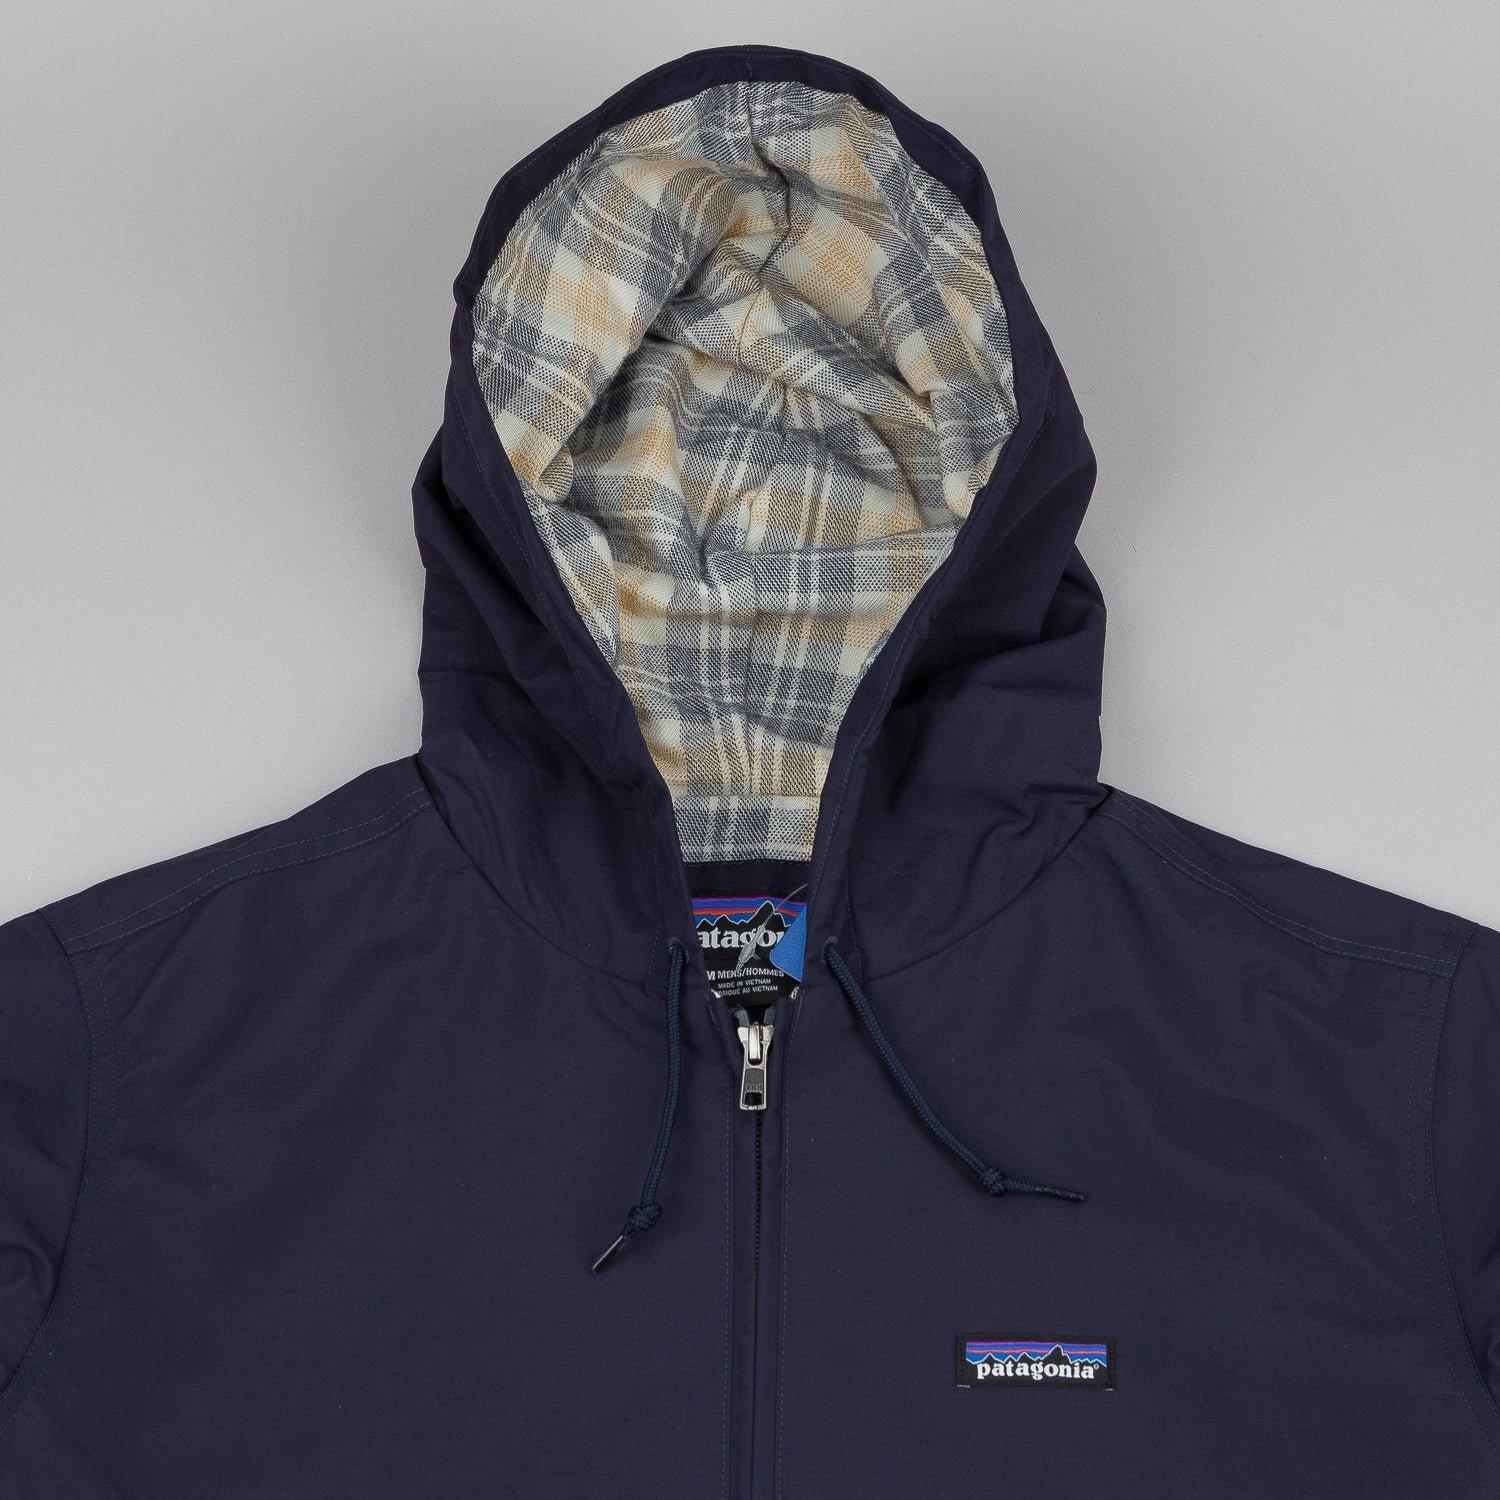 Patagonia Lined Baggies Jacket - Blue Black